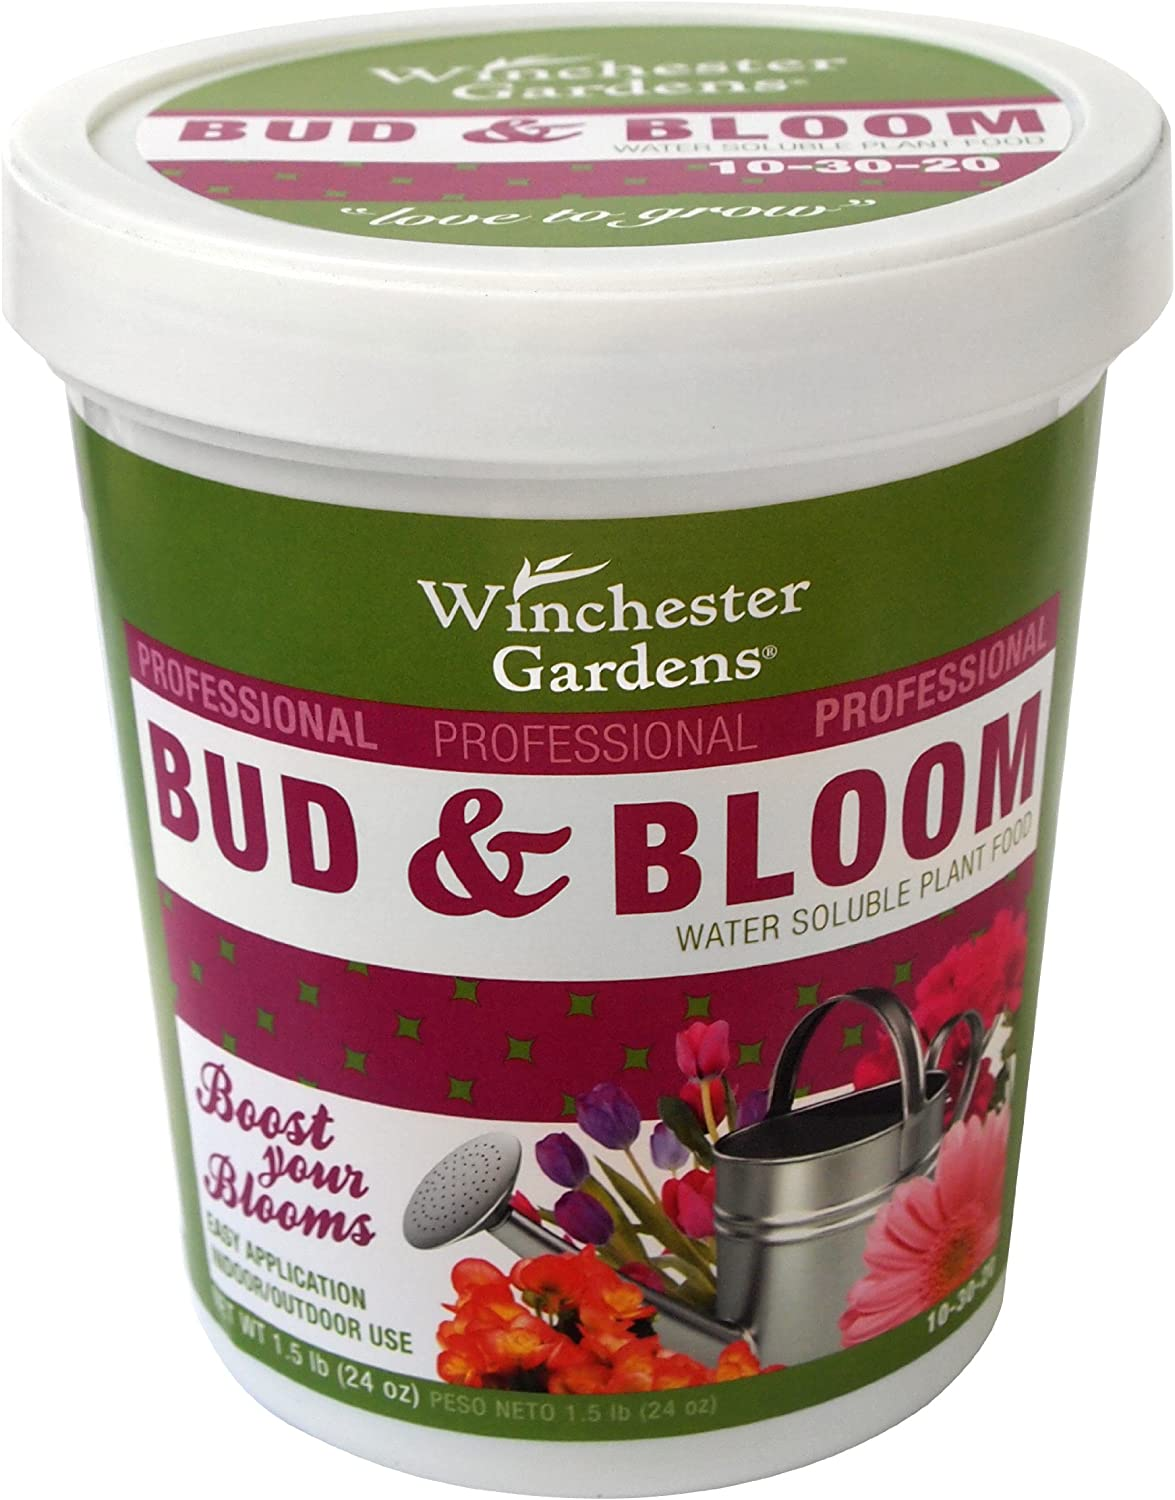 Winchester Gardens Water Soluble Plant Food Bud and Bloom Fertilizer, 1.5-Pound